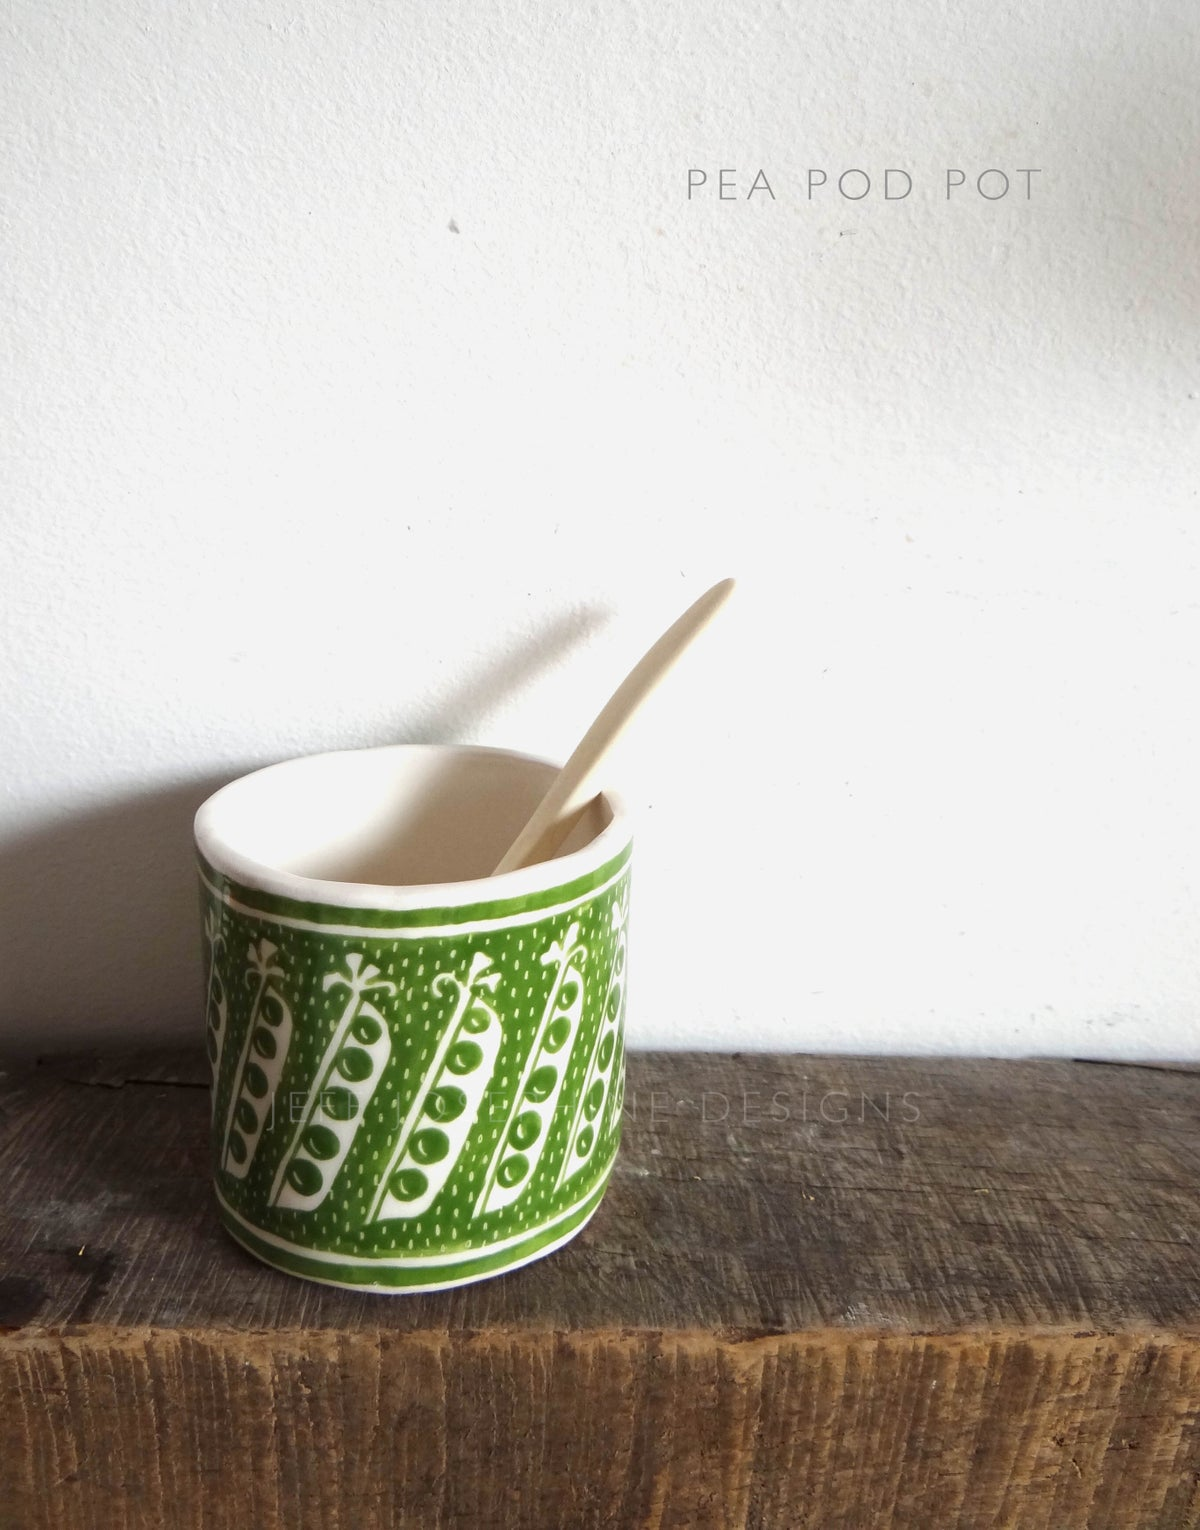 Image of Pea Pod Pot